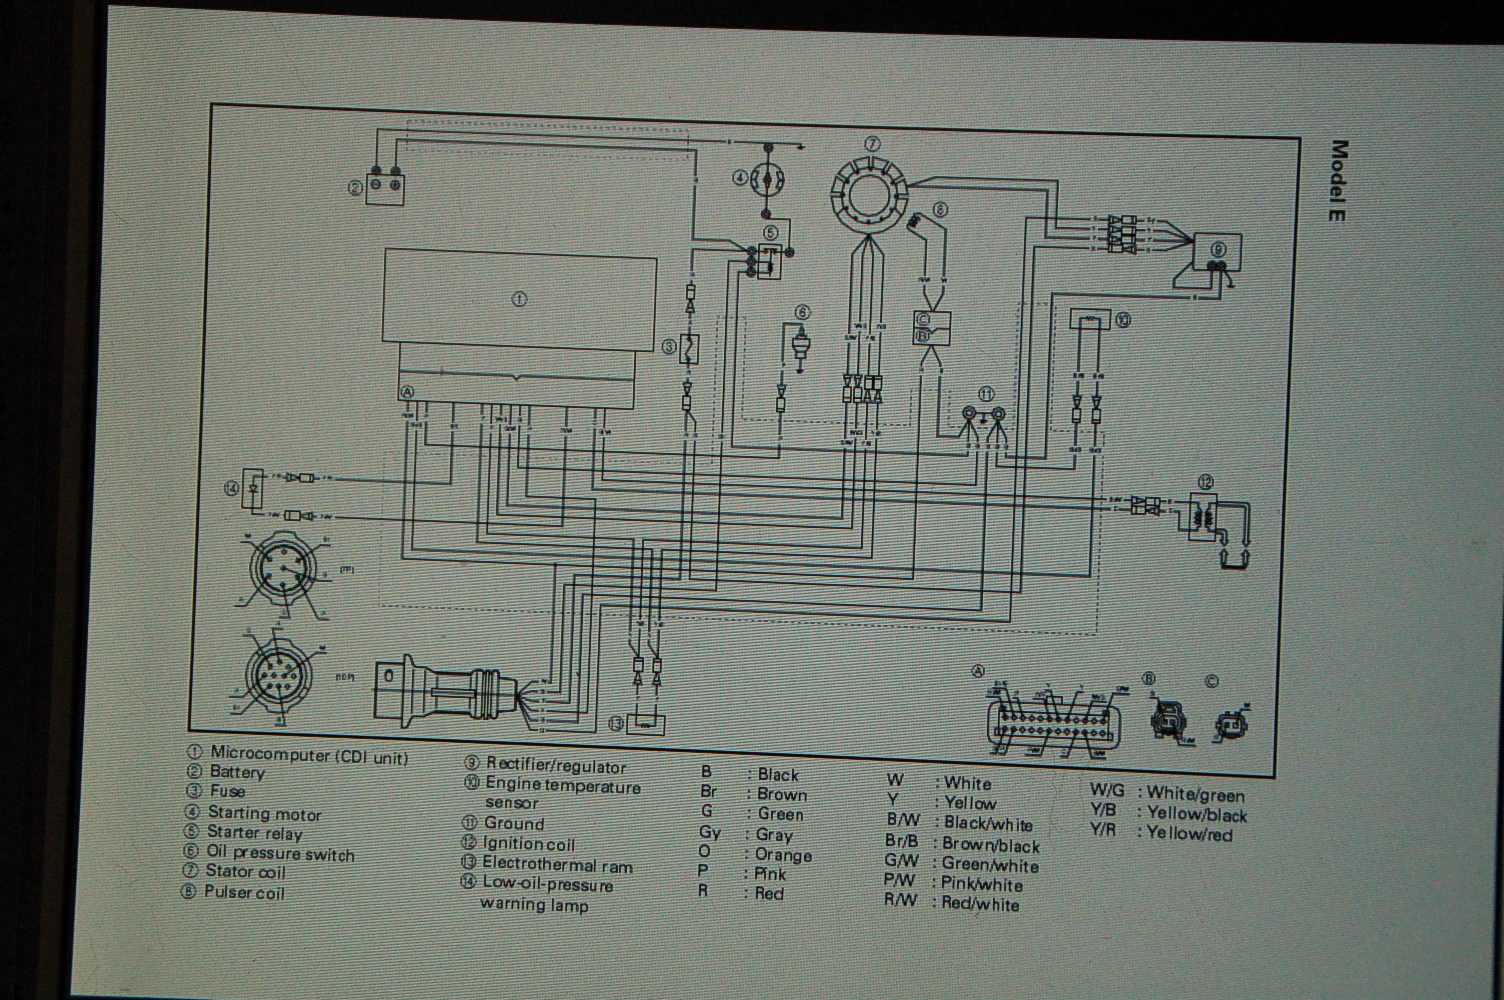 wiring up yamaha 30 boat design net yamaha key switch wiring diagram at gsmportal.co